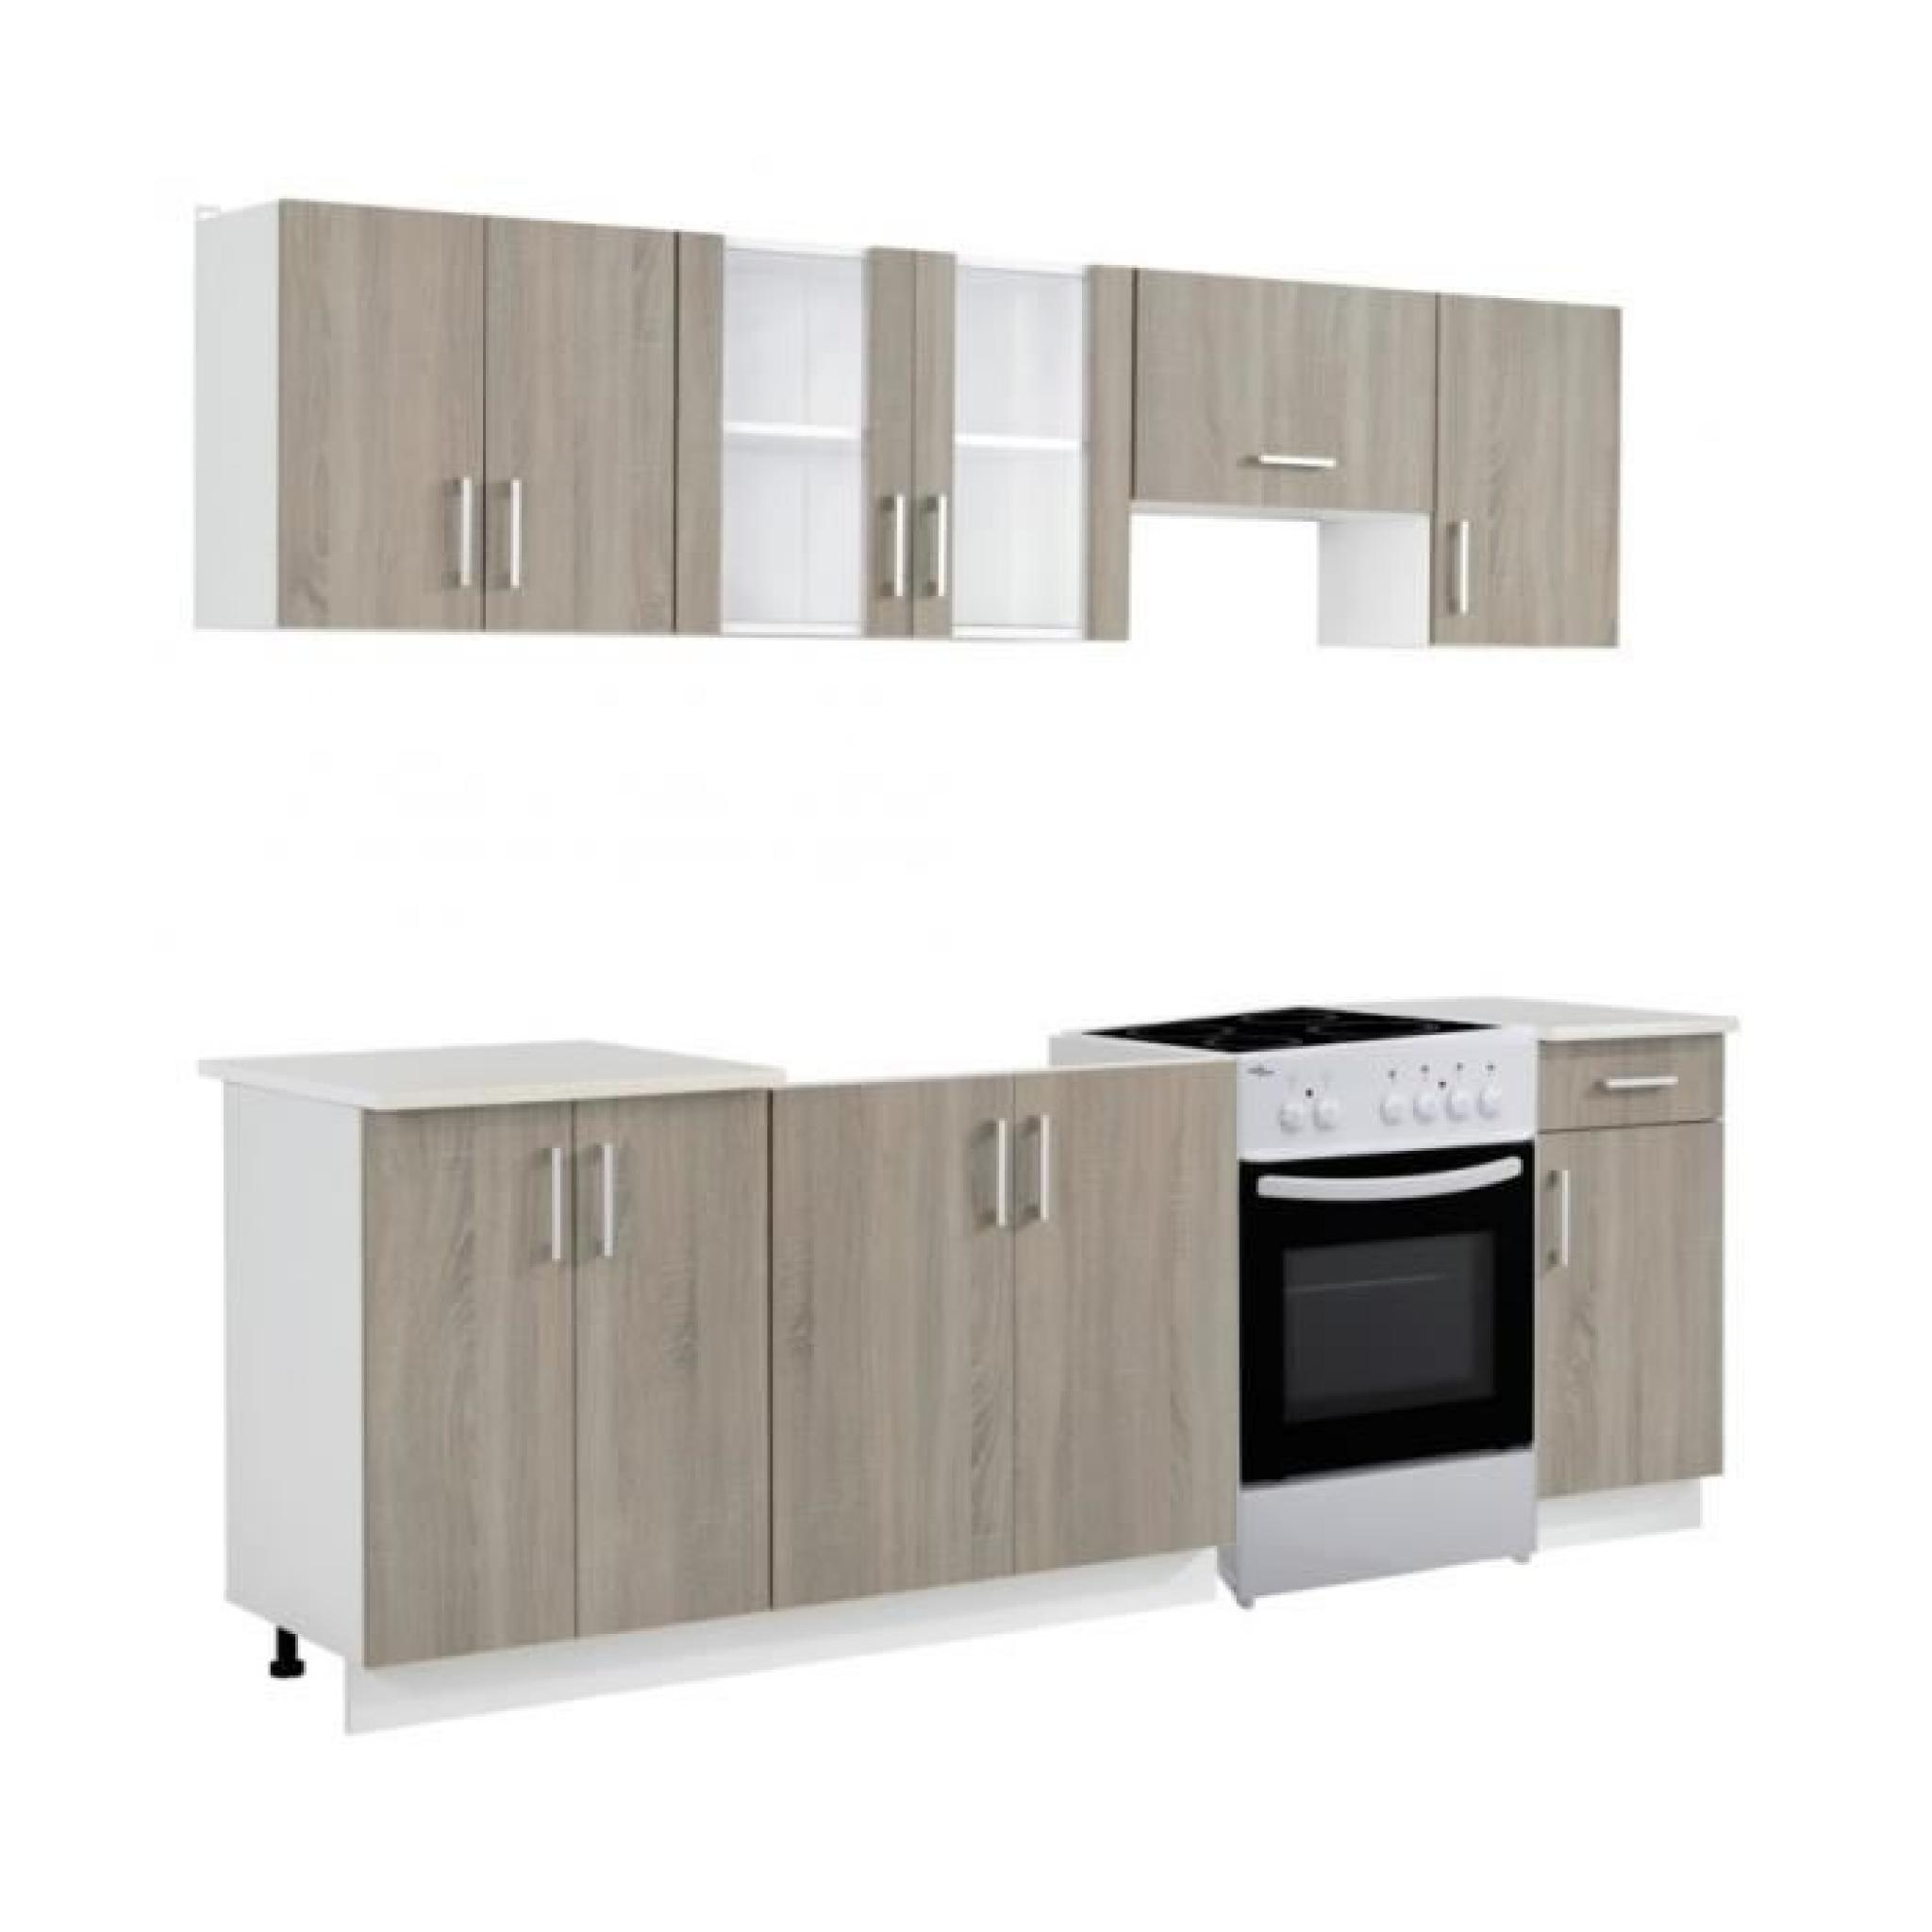 superbe bloc armoires de cuisine couleur ch ne 7 pcs avec four autoportant achat vente buffet. Black Bedroom Furniture Sets. Home Design Ideas